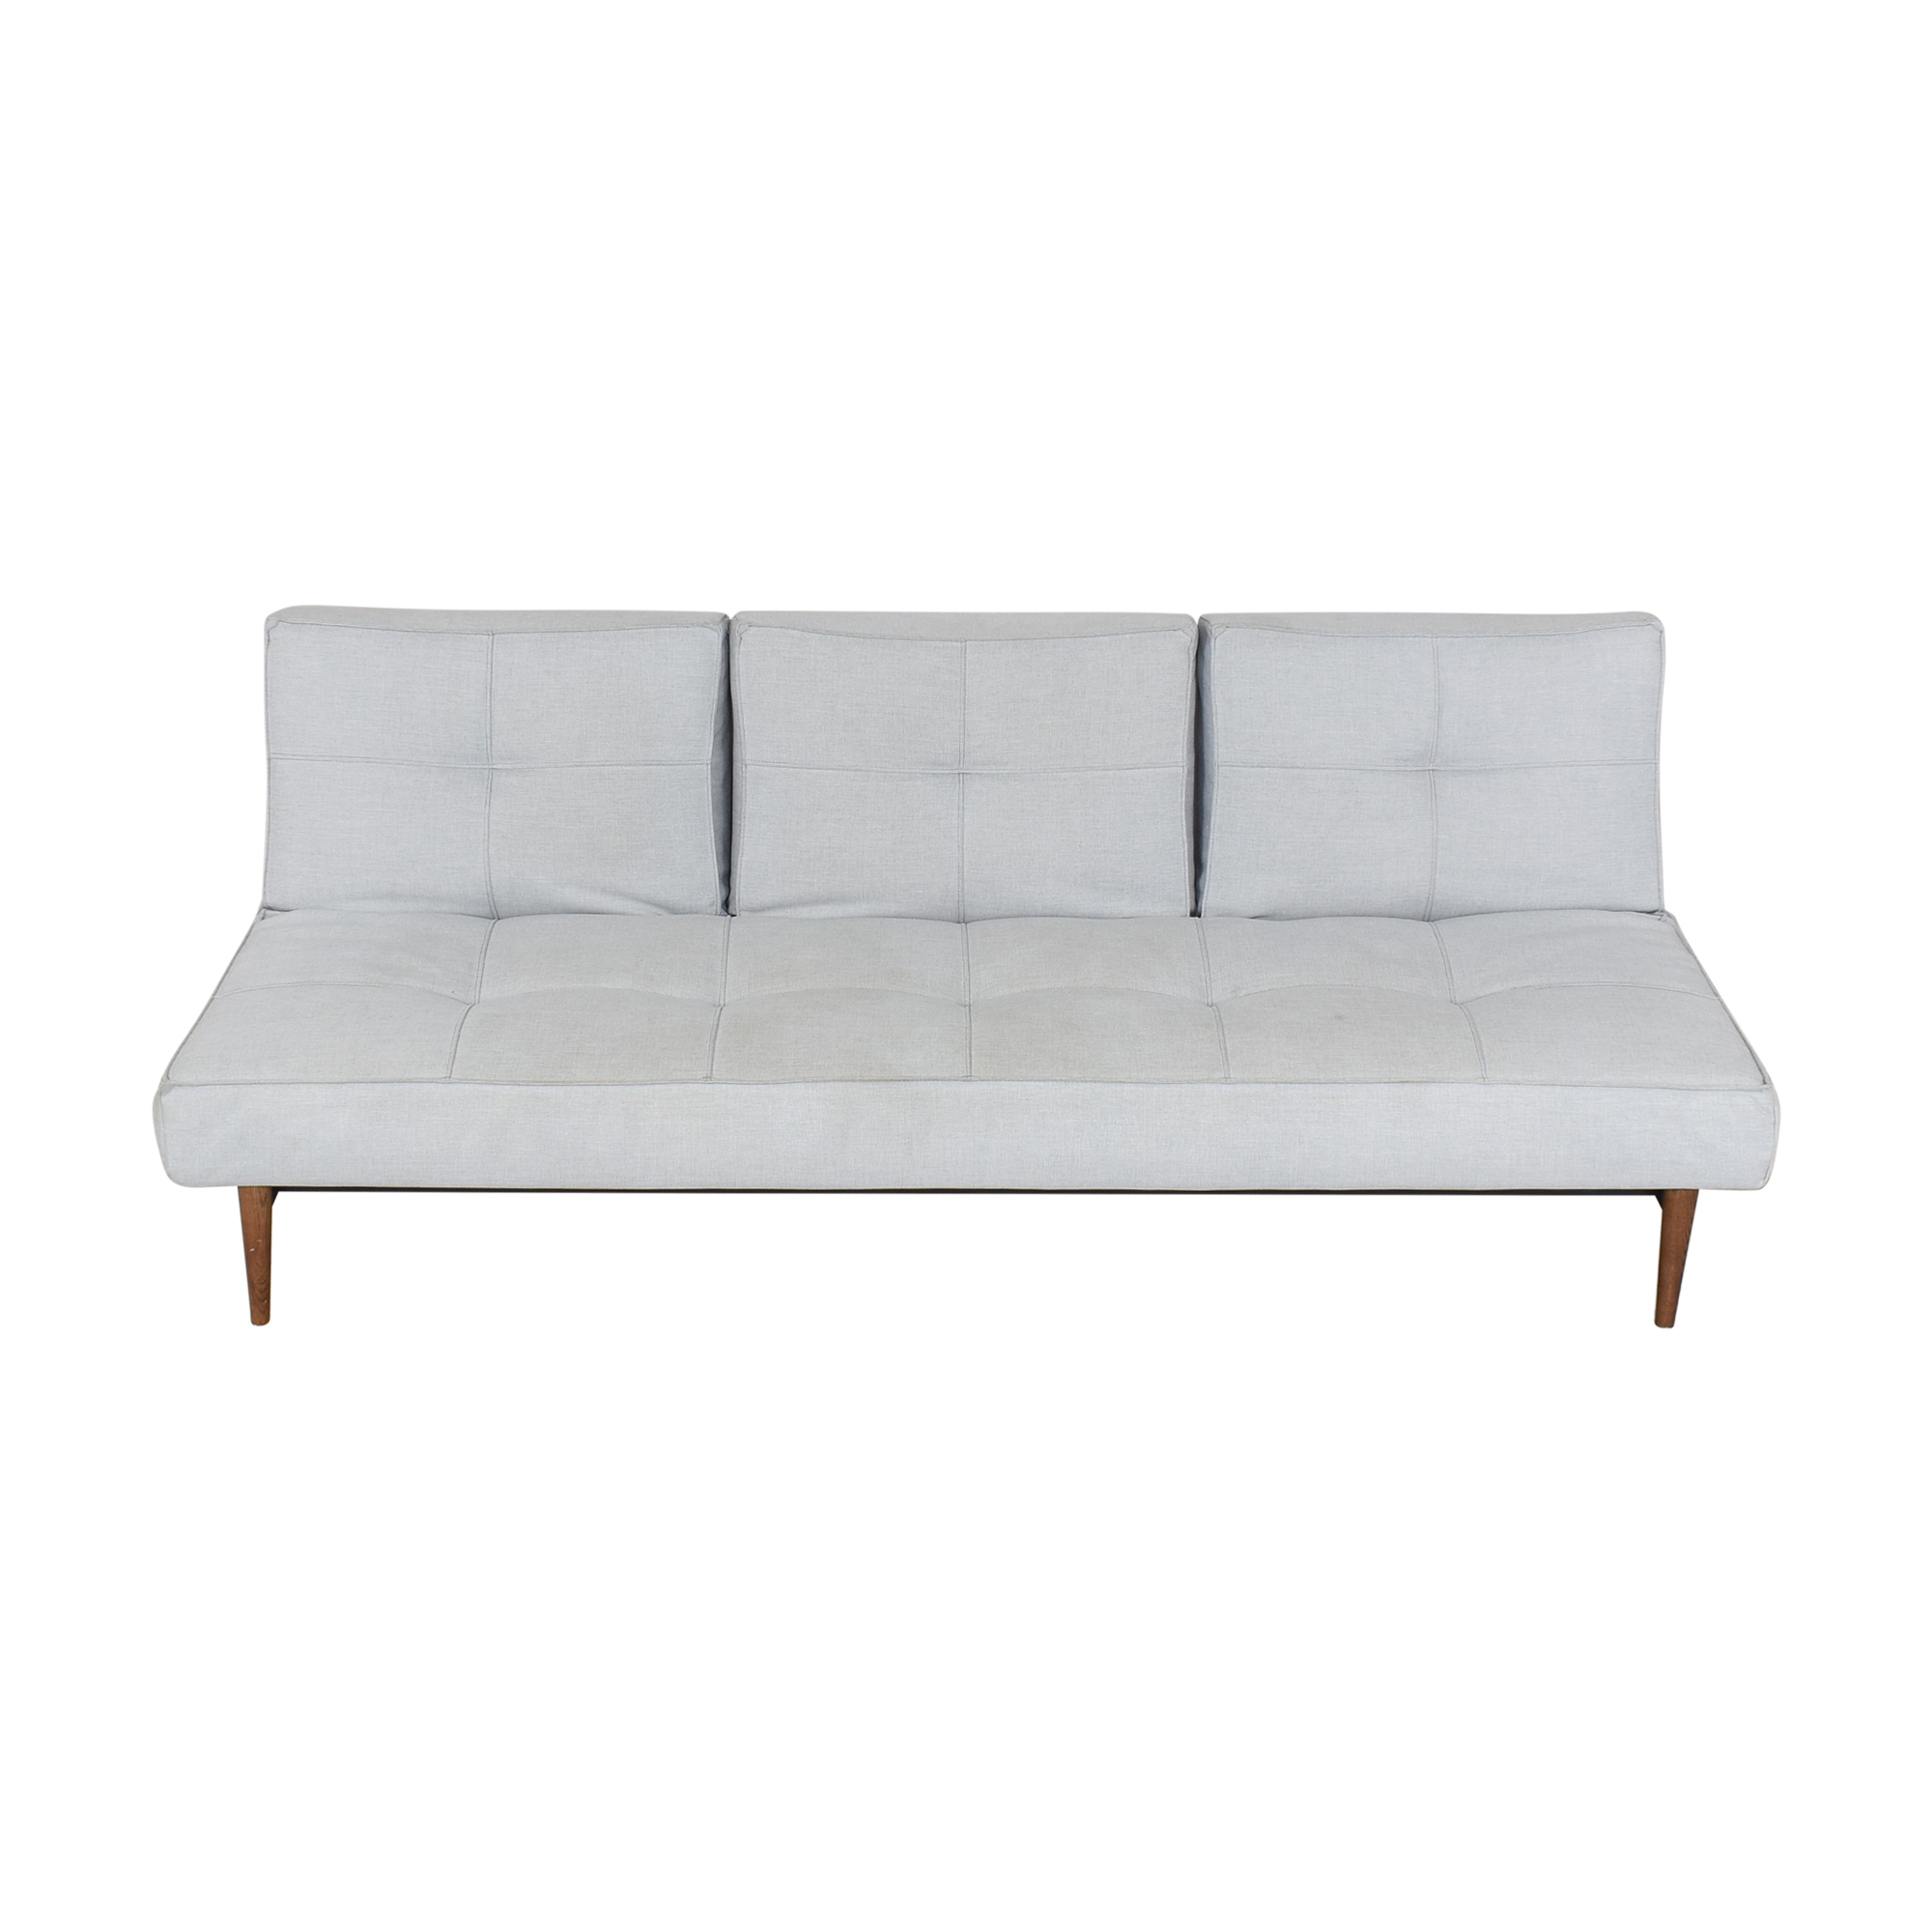 Innovation Living Convertible Sofa Bed sale